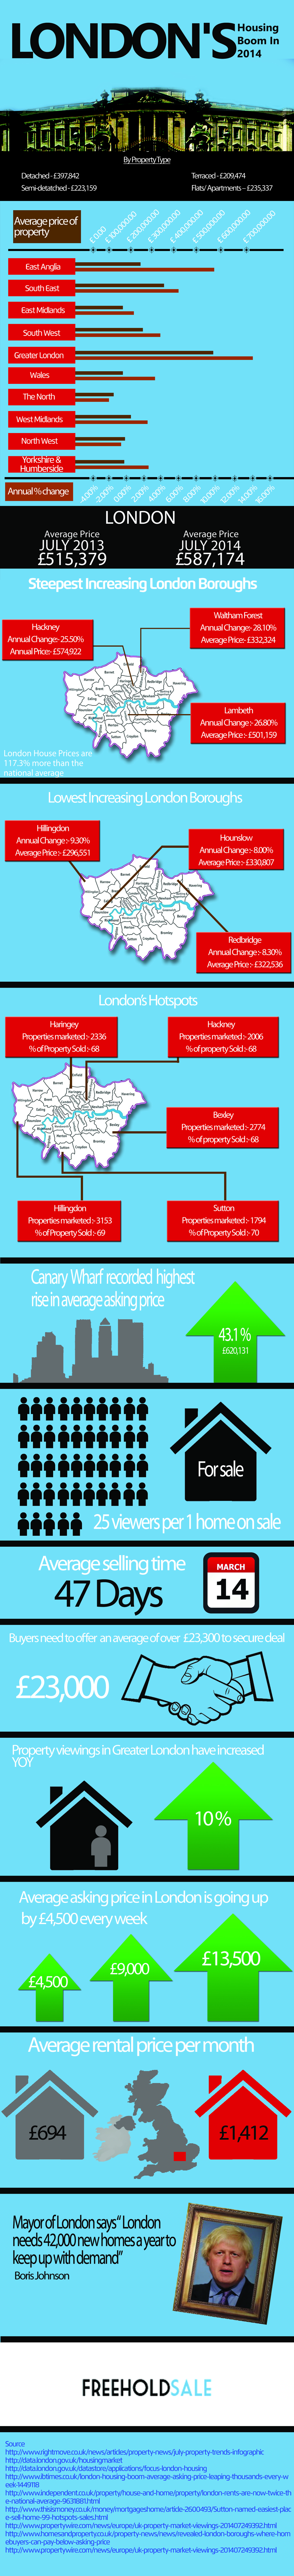 London-housing-2014-infographic